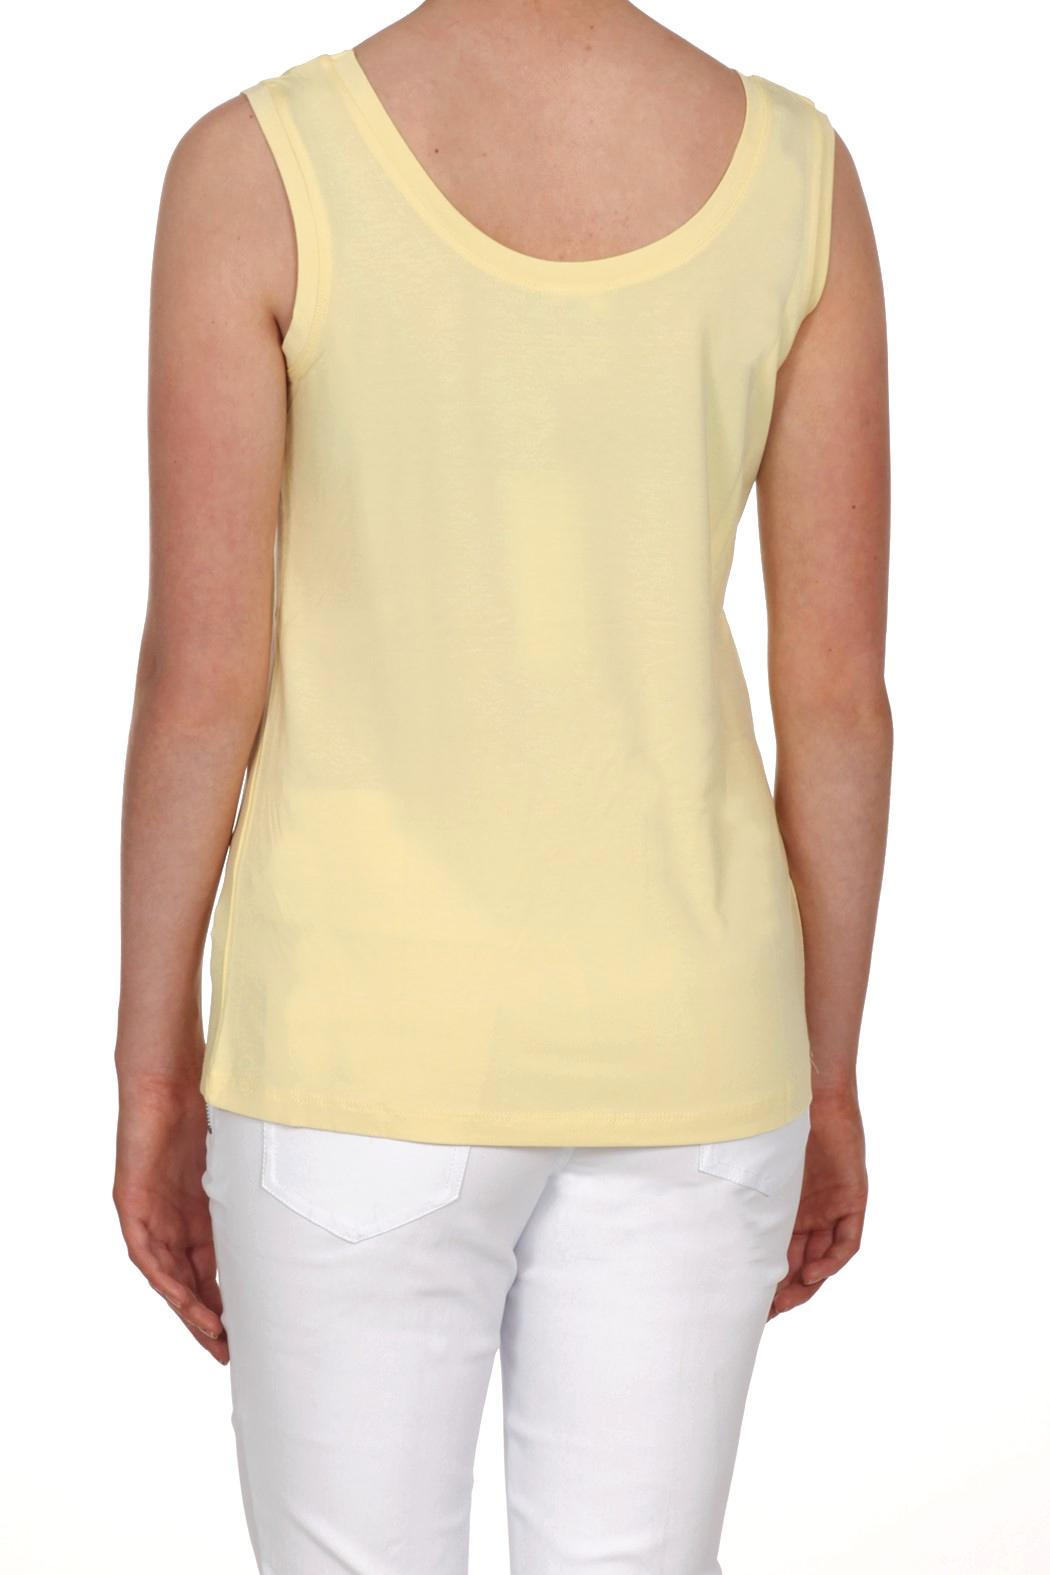 Dolcezza Yellow Sleeveless Top - Front Full Image